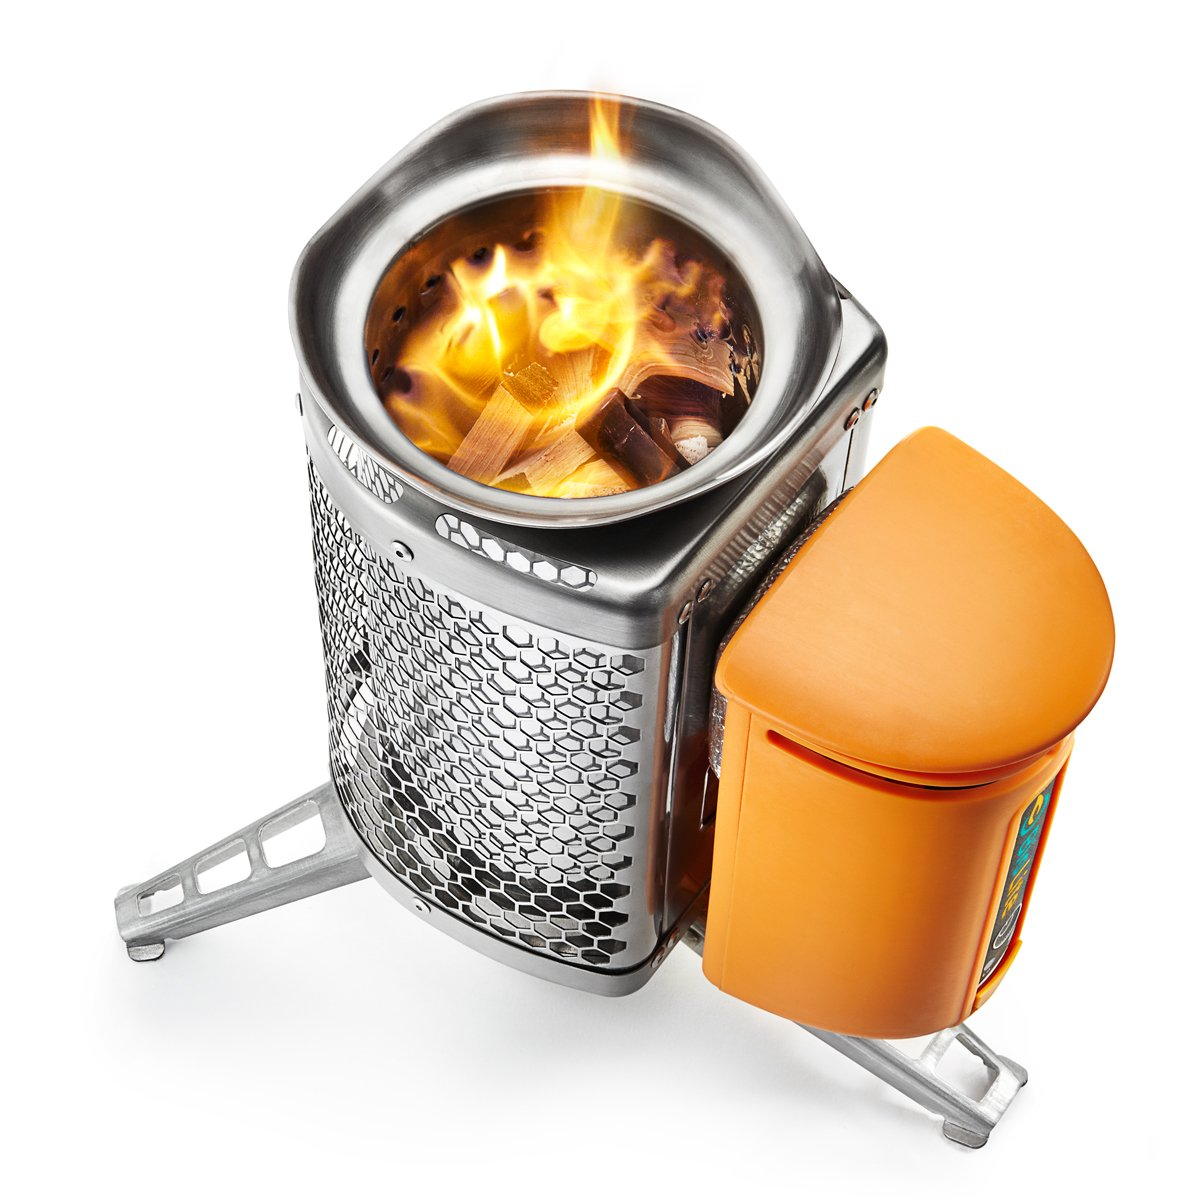 Amazon.com : BioLite Wood Burning CampStove First Generation ...